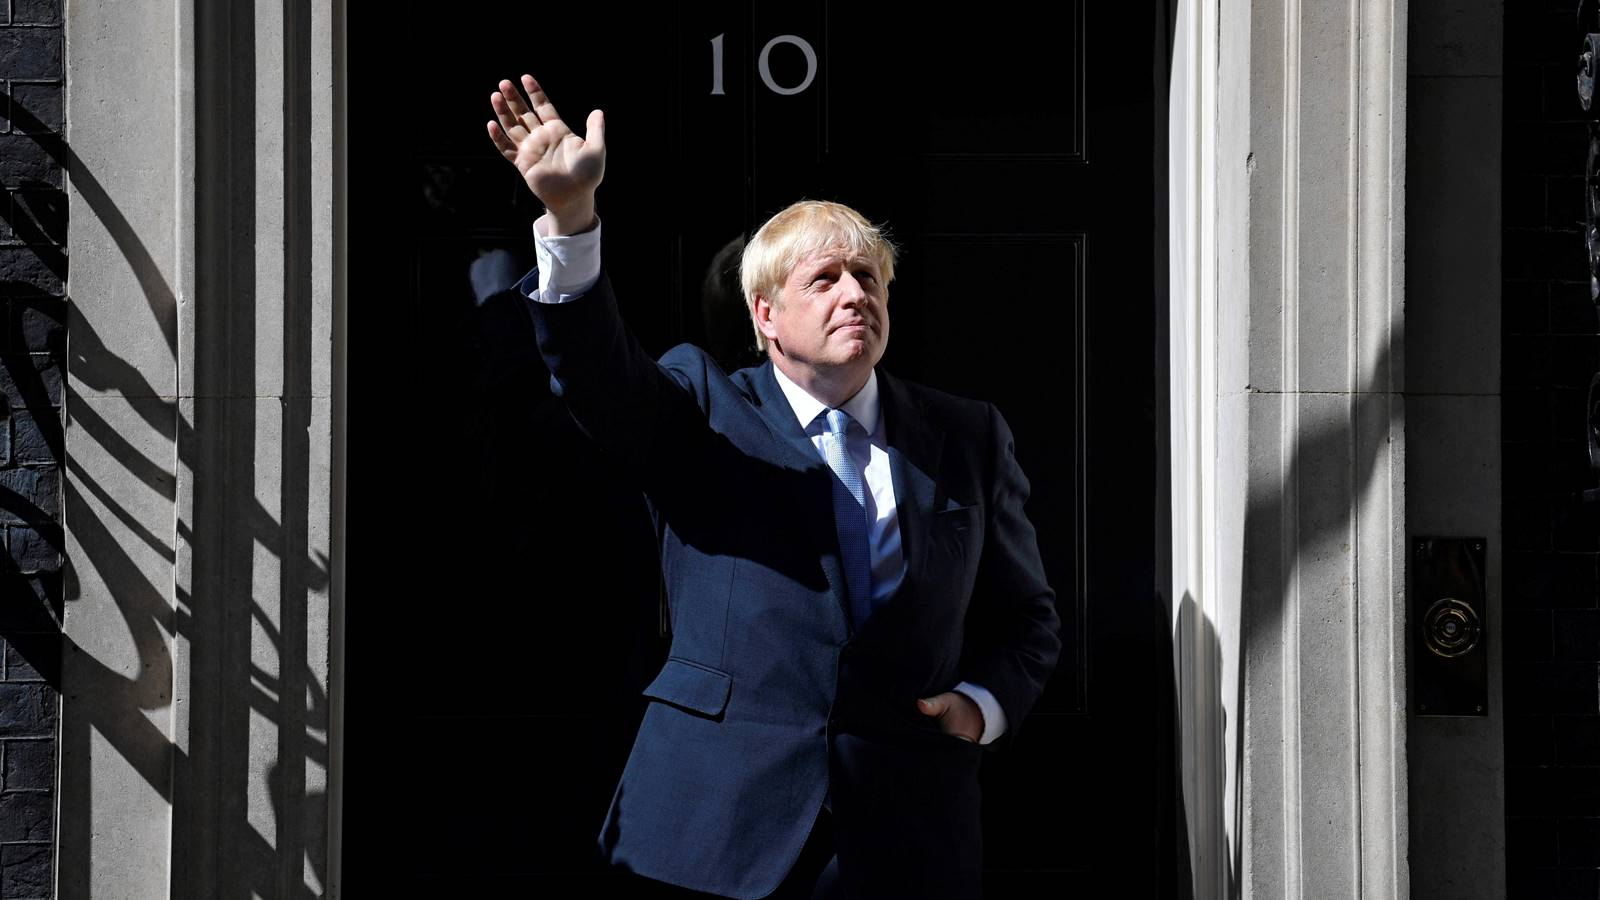 Boris Johnson, 'imperturbable' ante intento del Parlamento de bloquear un Brexit duro